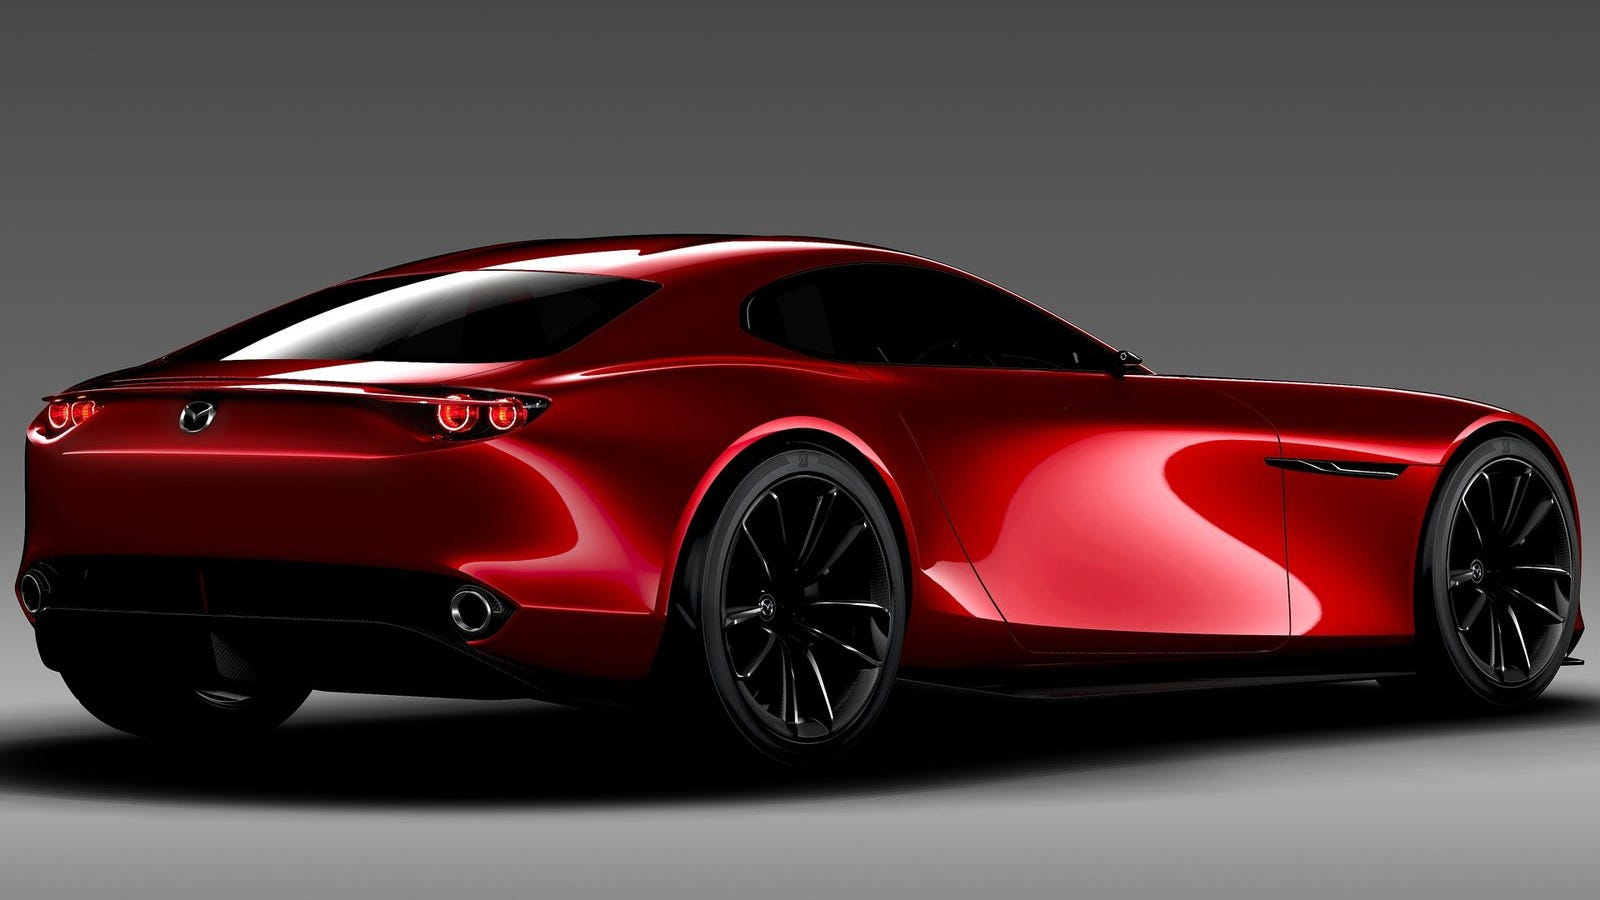 Mazda S Rotary Engine Will Finally Return In 2019 As A